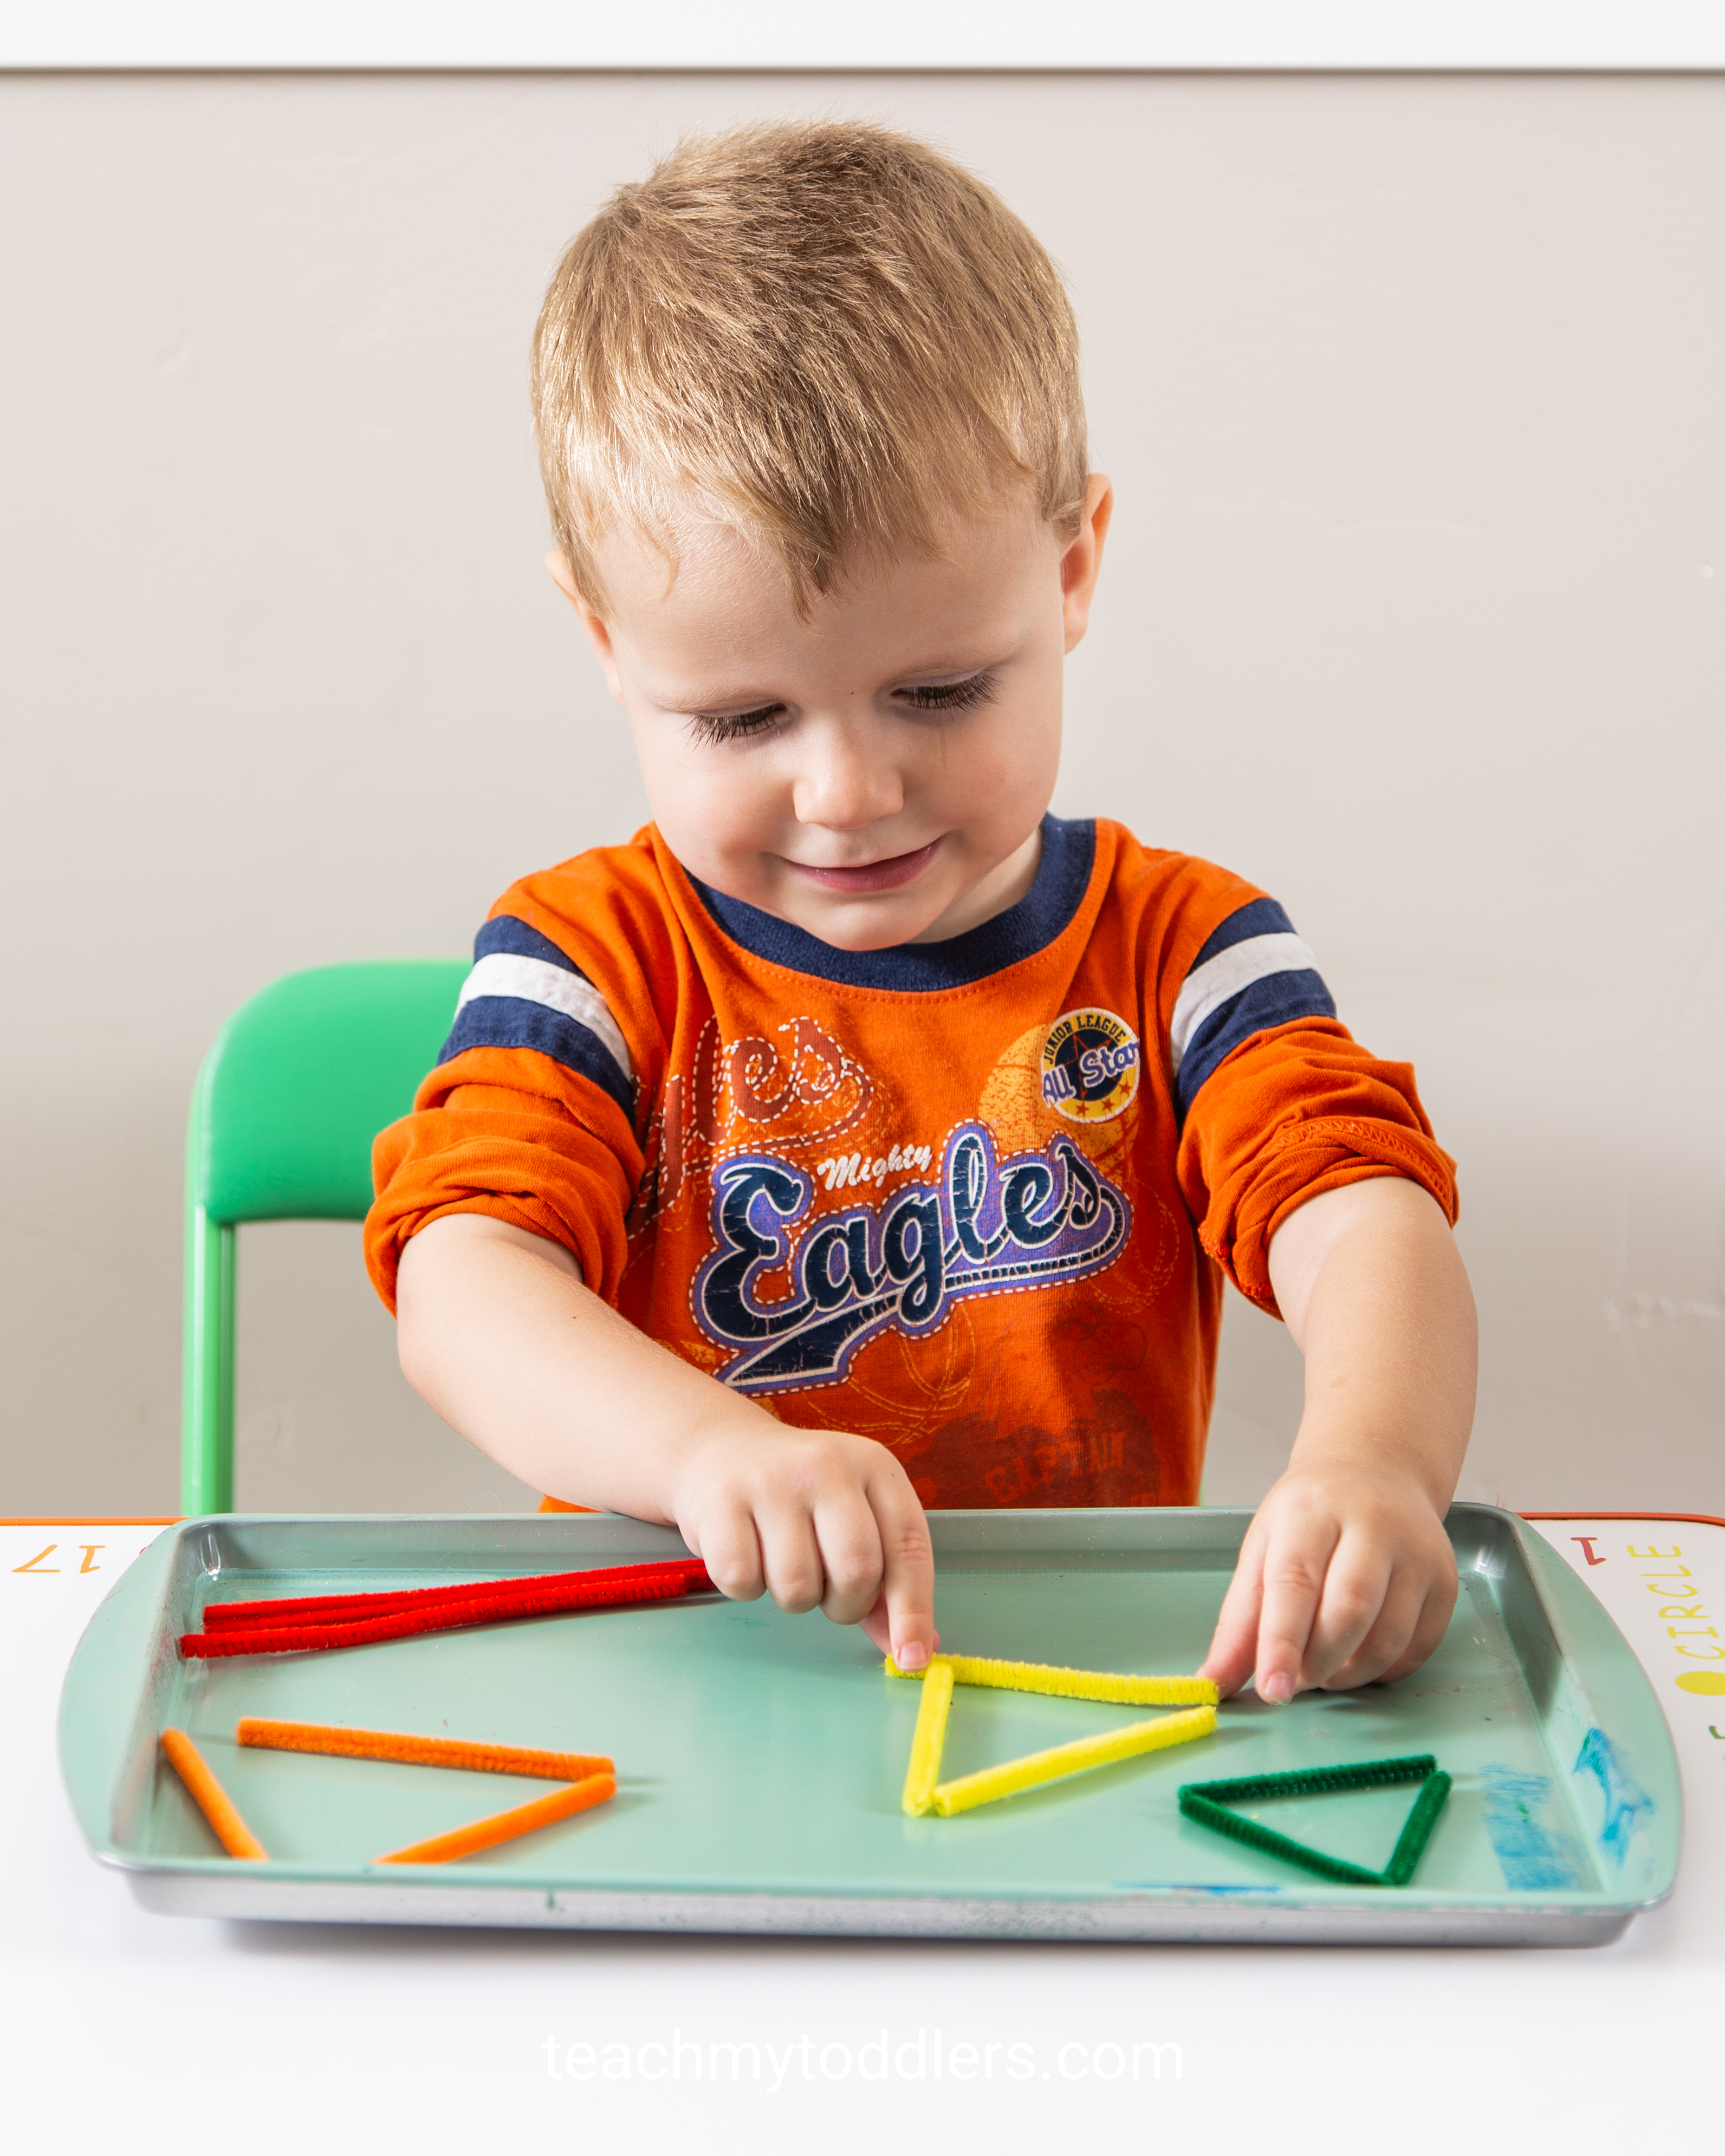 Use these great triangle trays to teach toddlers shapes